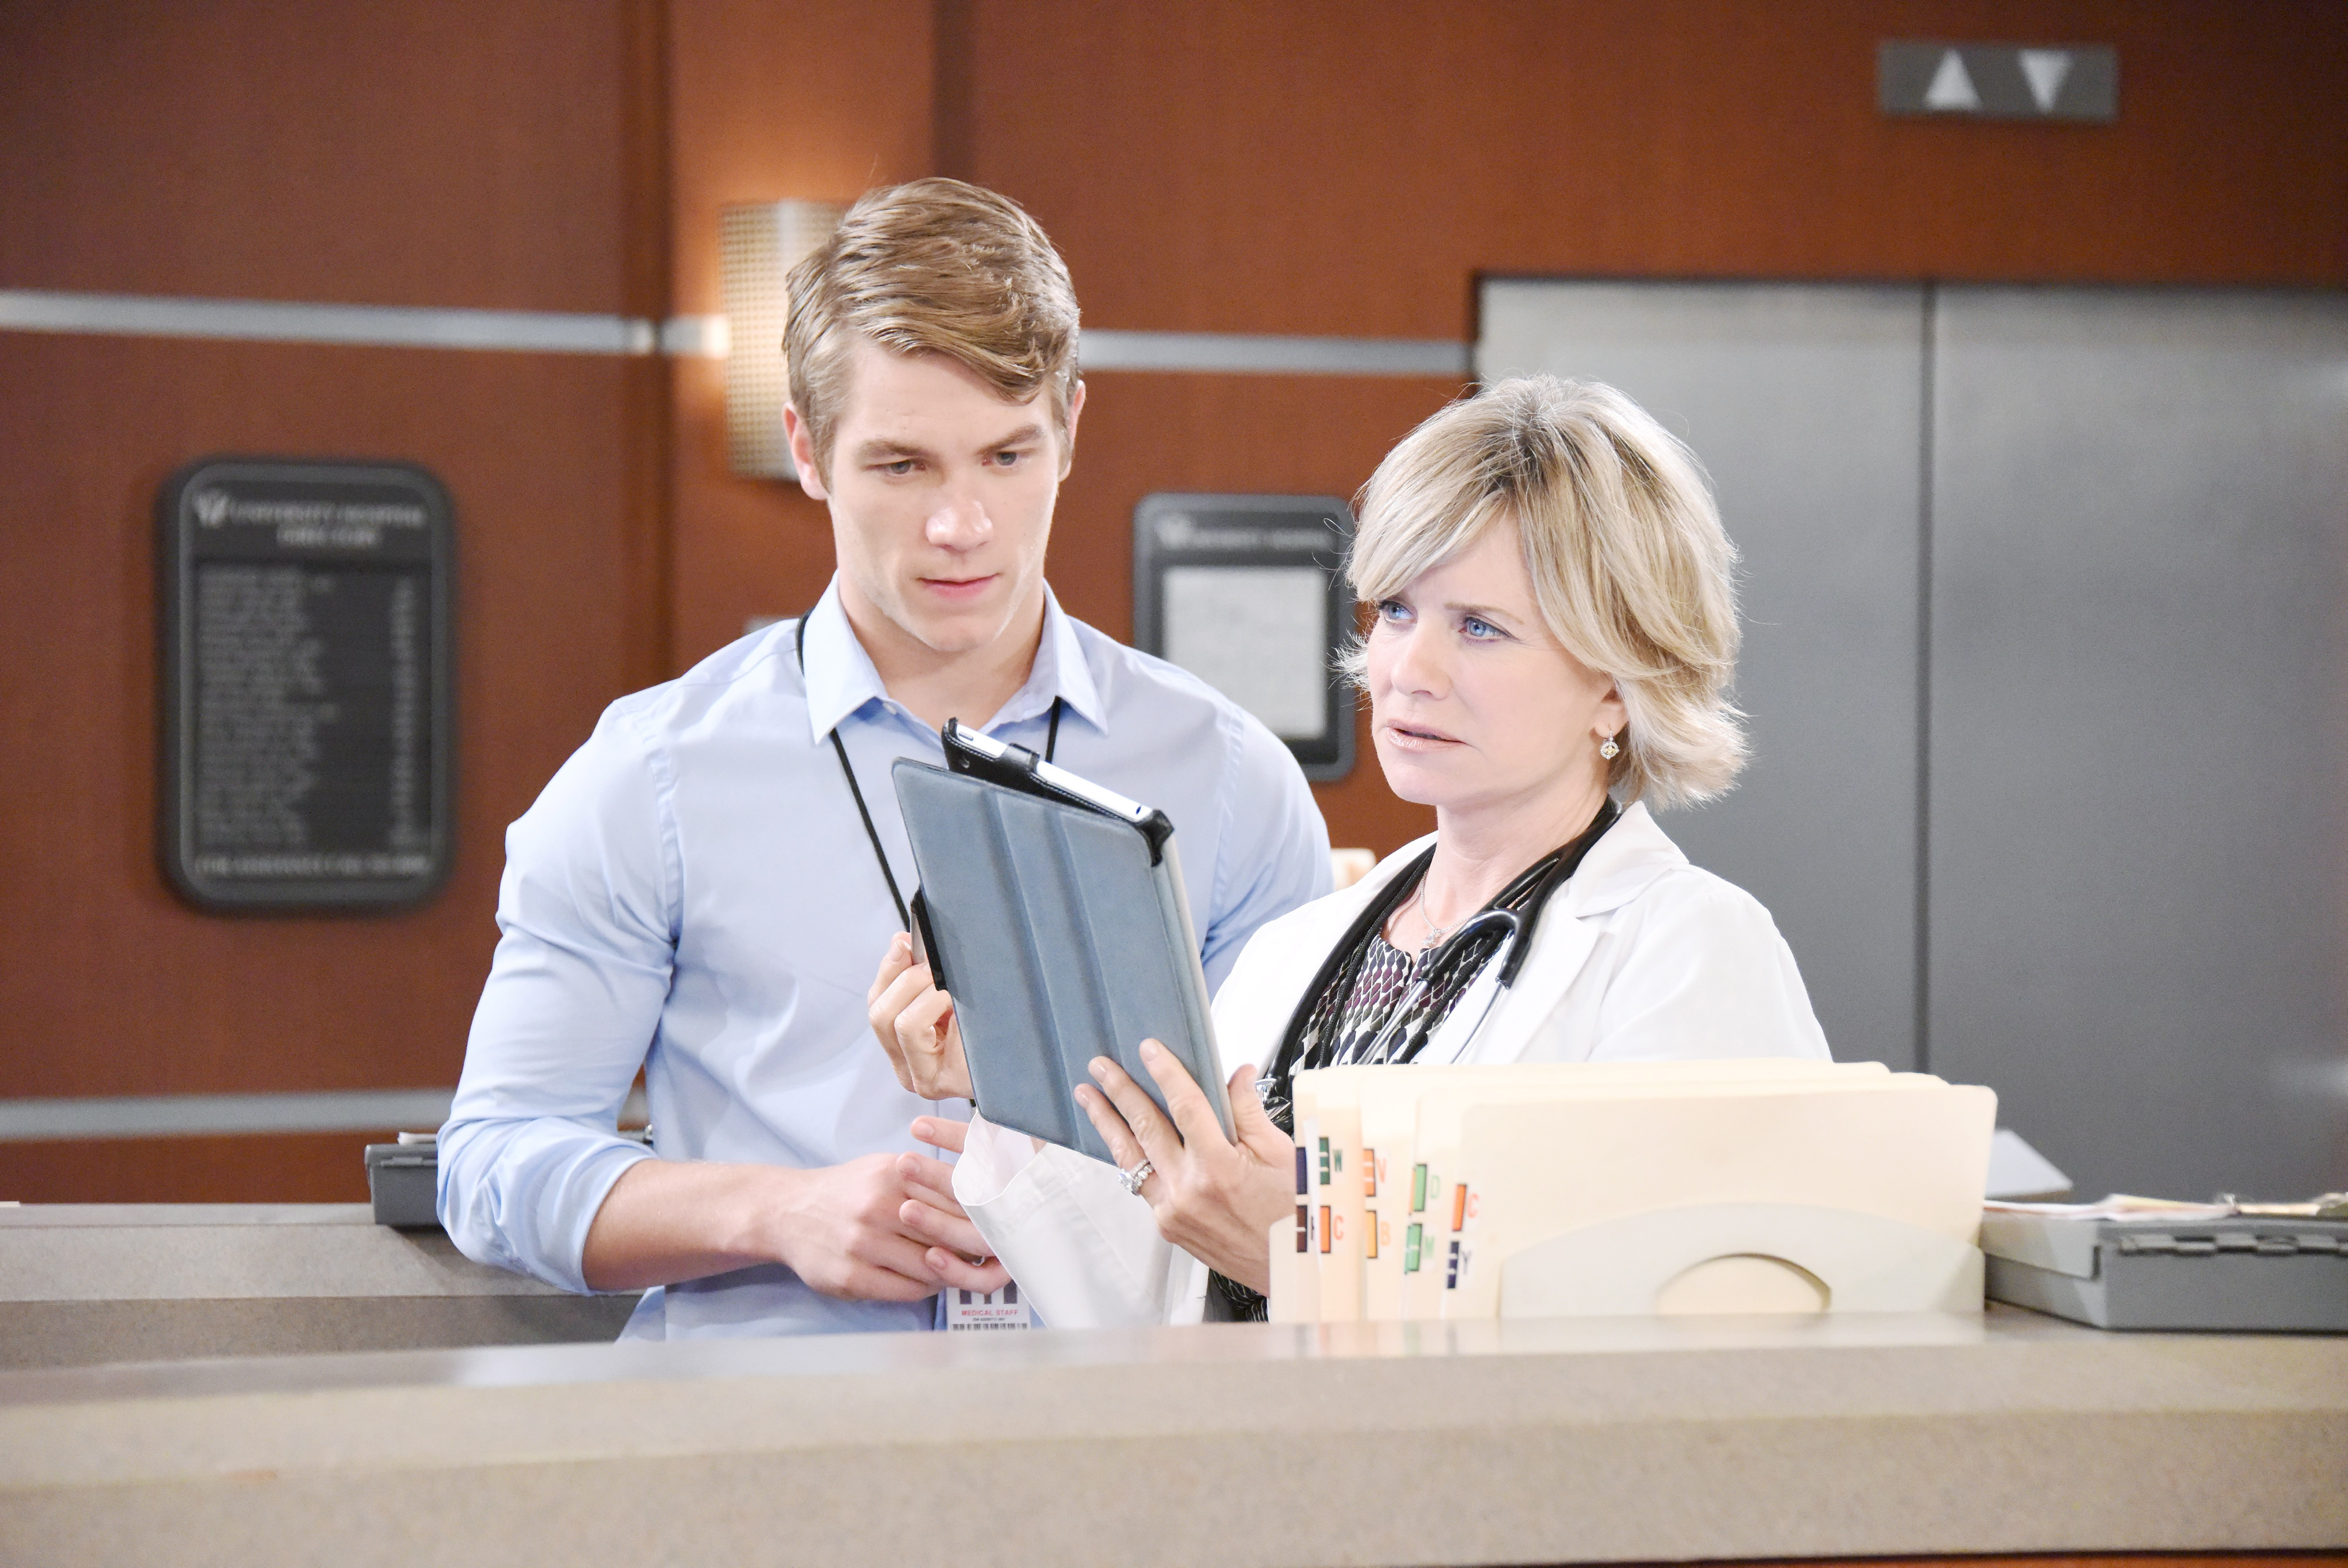 DAYS OF OUR LIVES EPISODE 13105